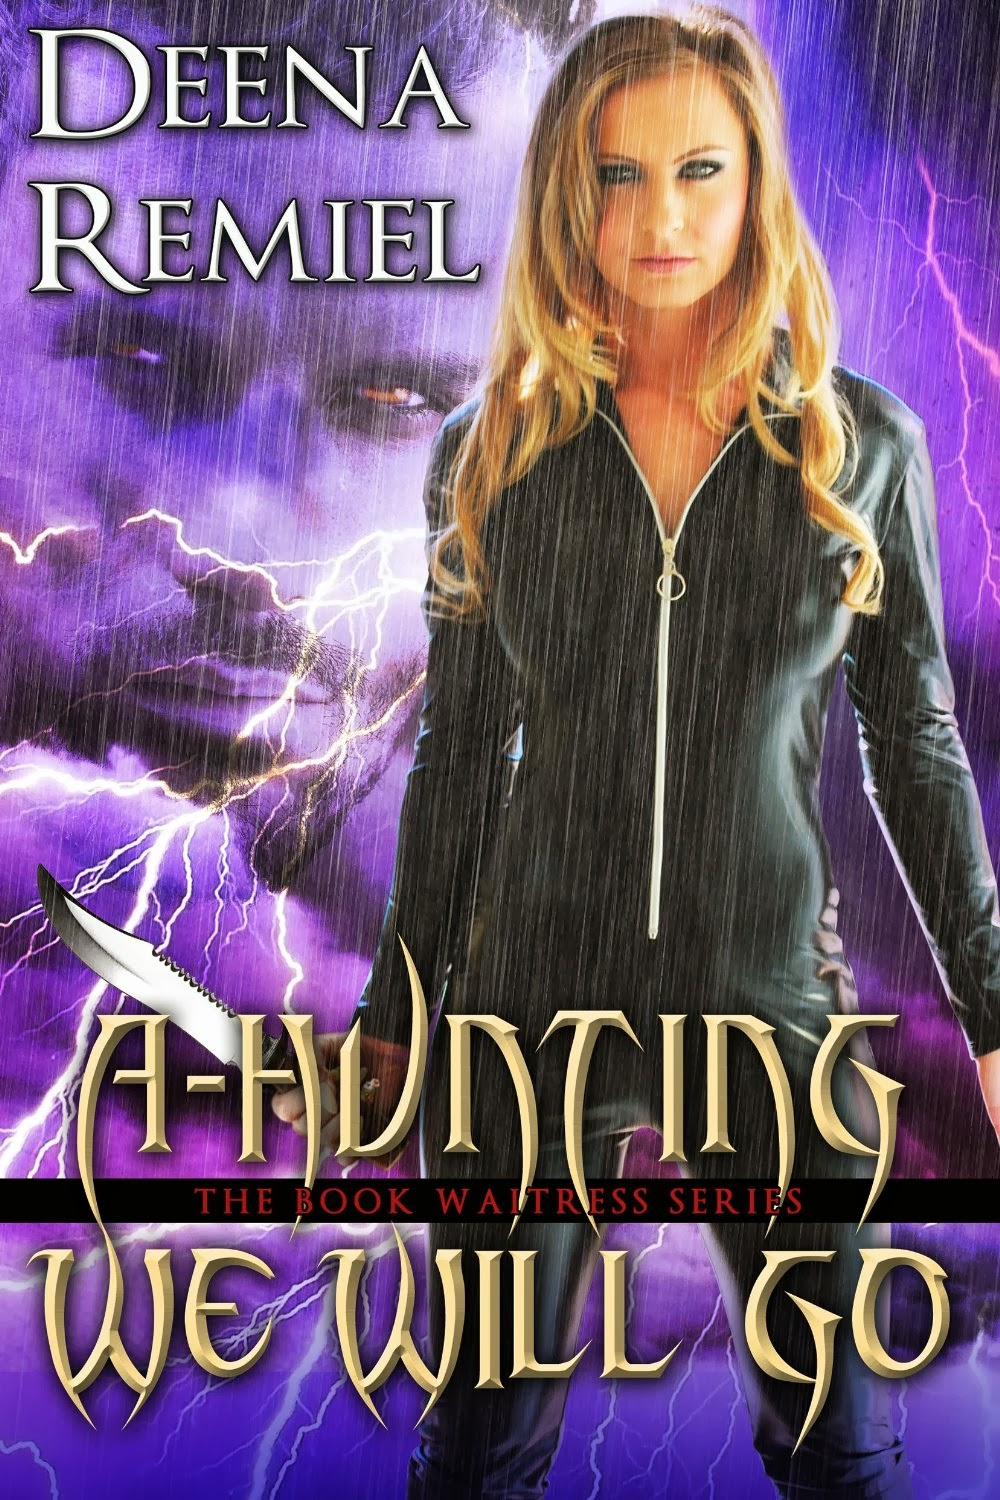 A-Hunting We Will Go (Book 4, Book Waitress Series) by Deena Remiel